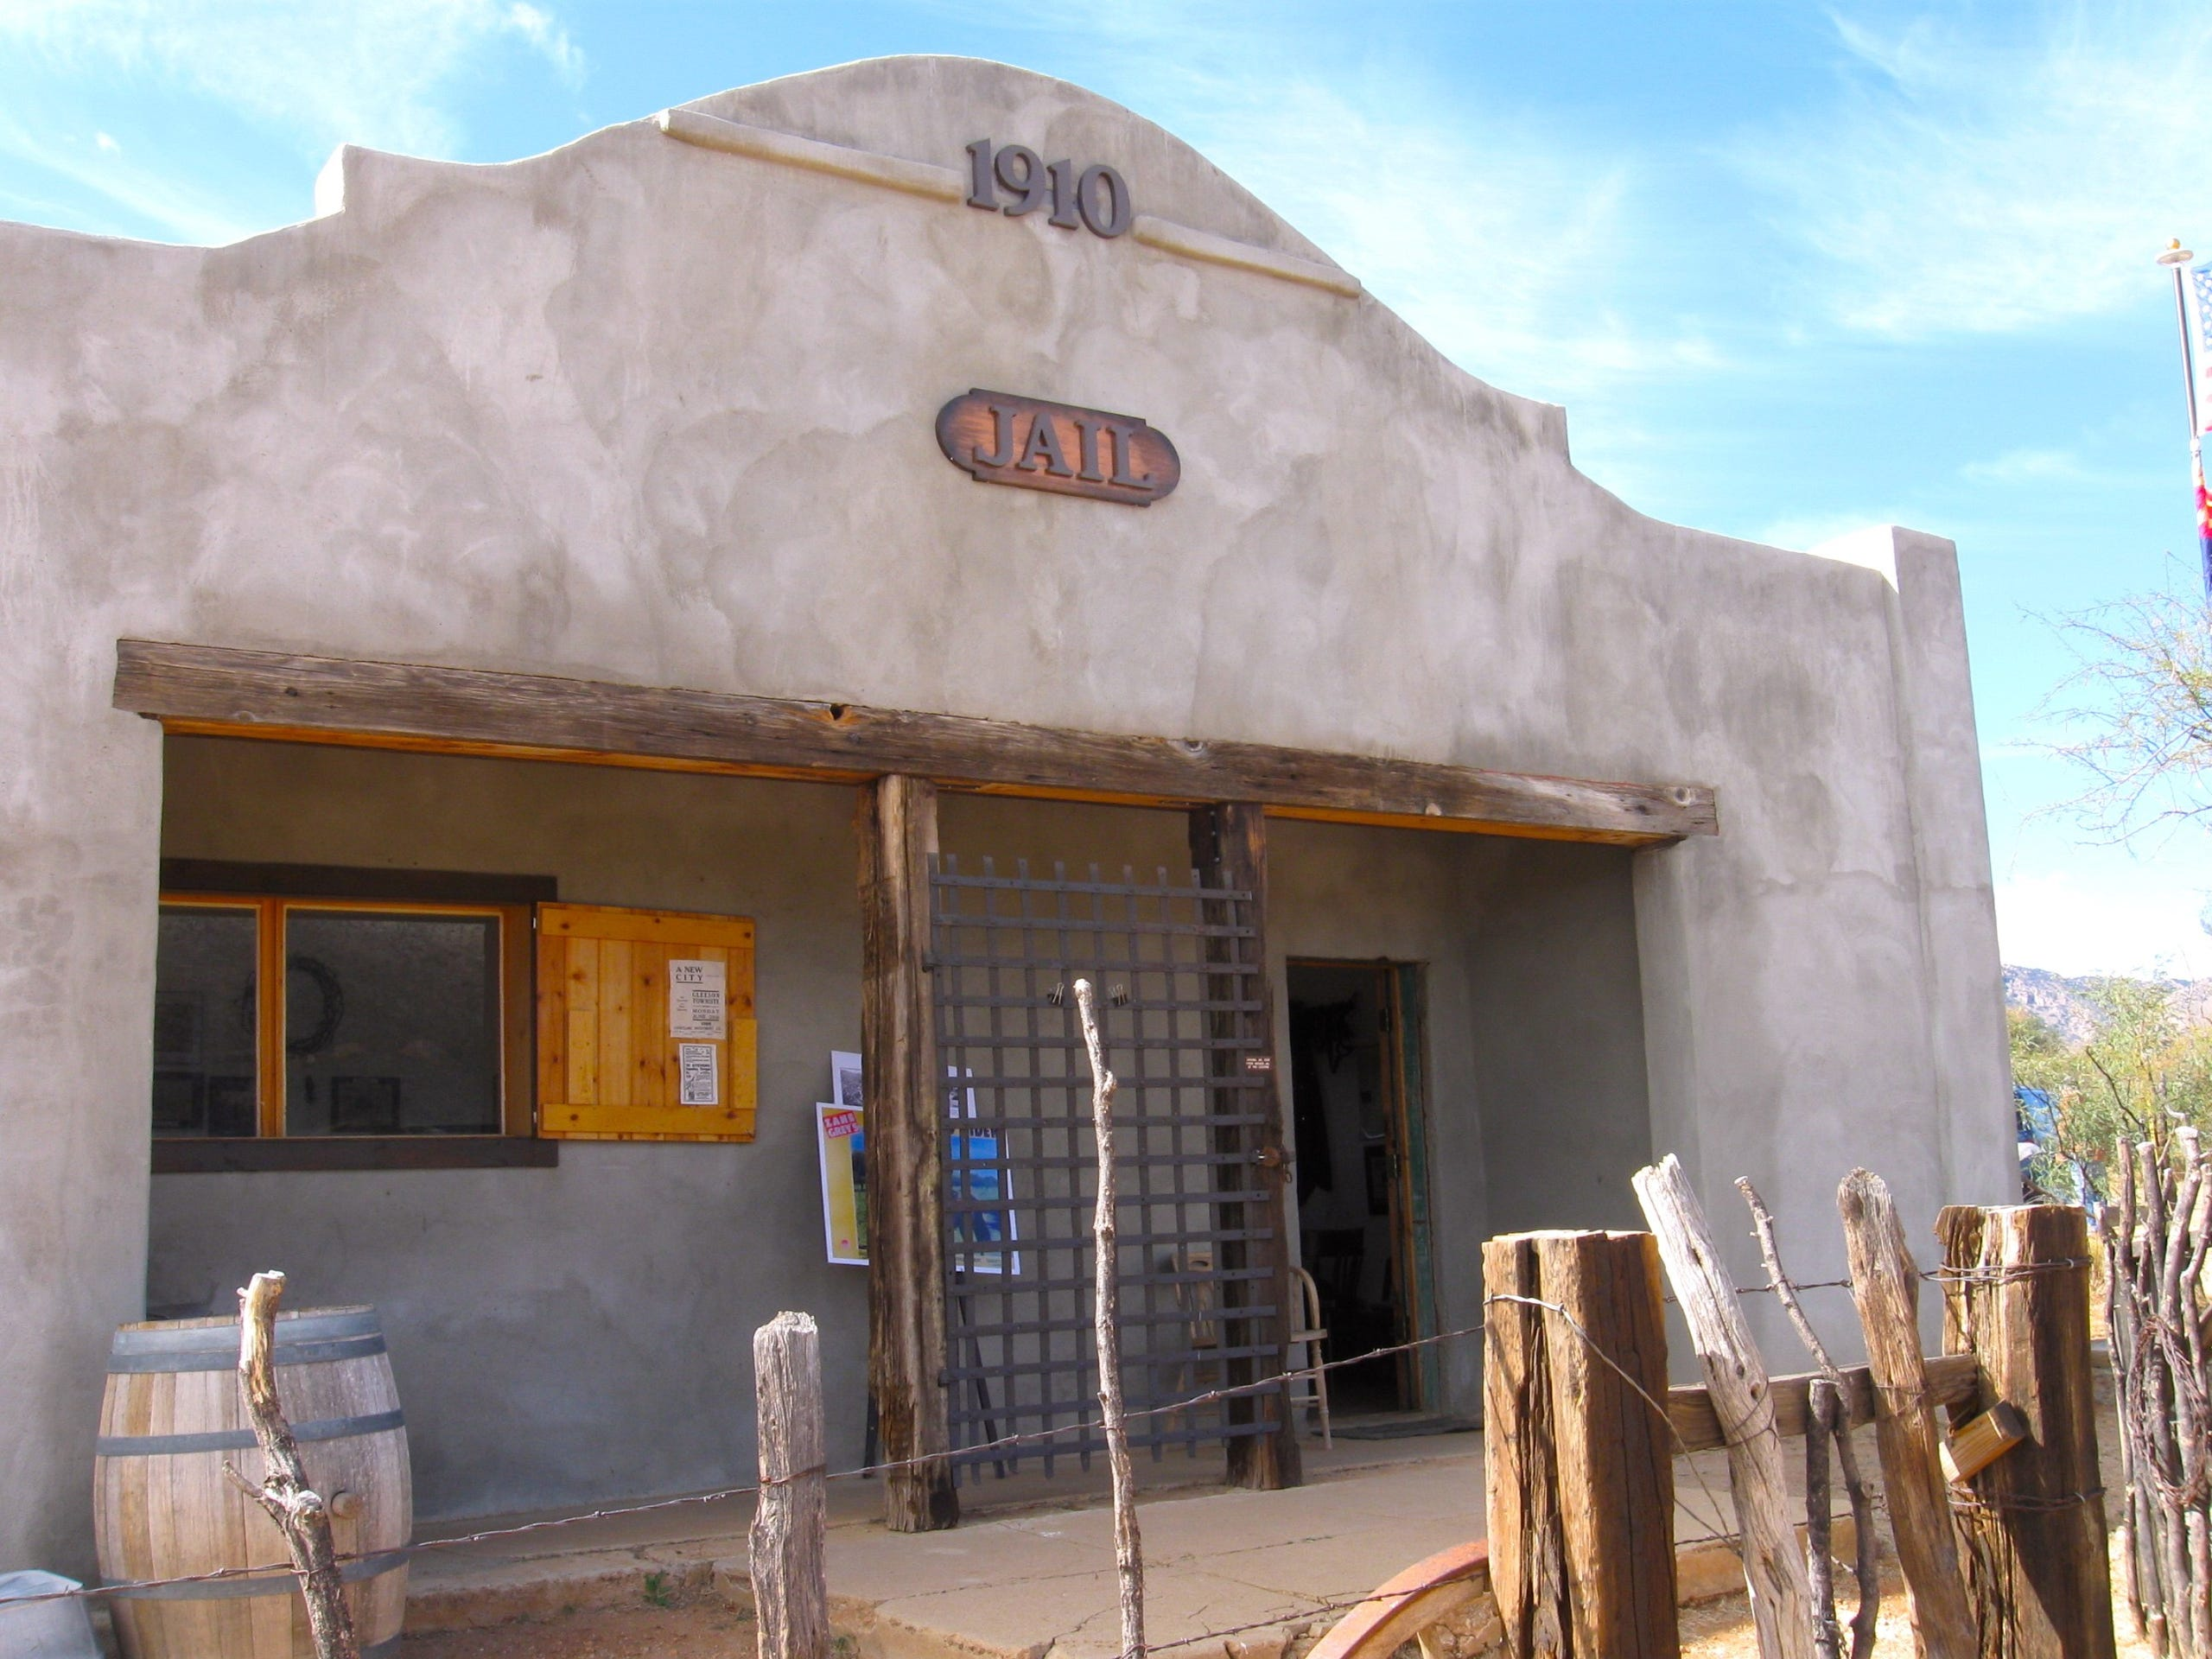 The restored 1910 jail in Gleeson, Arizona, is open on the first Saturday of each month.